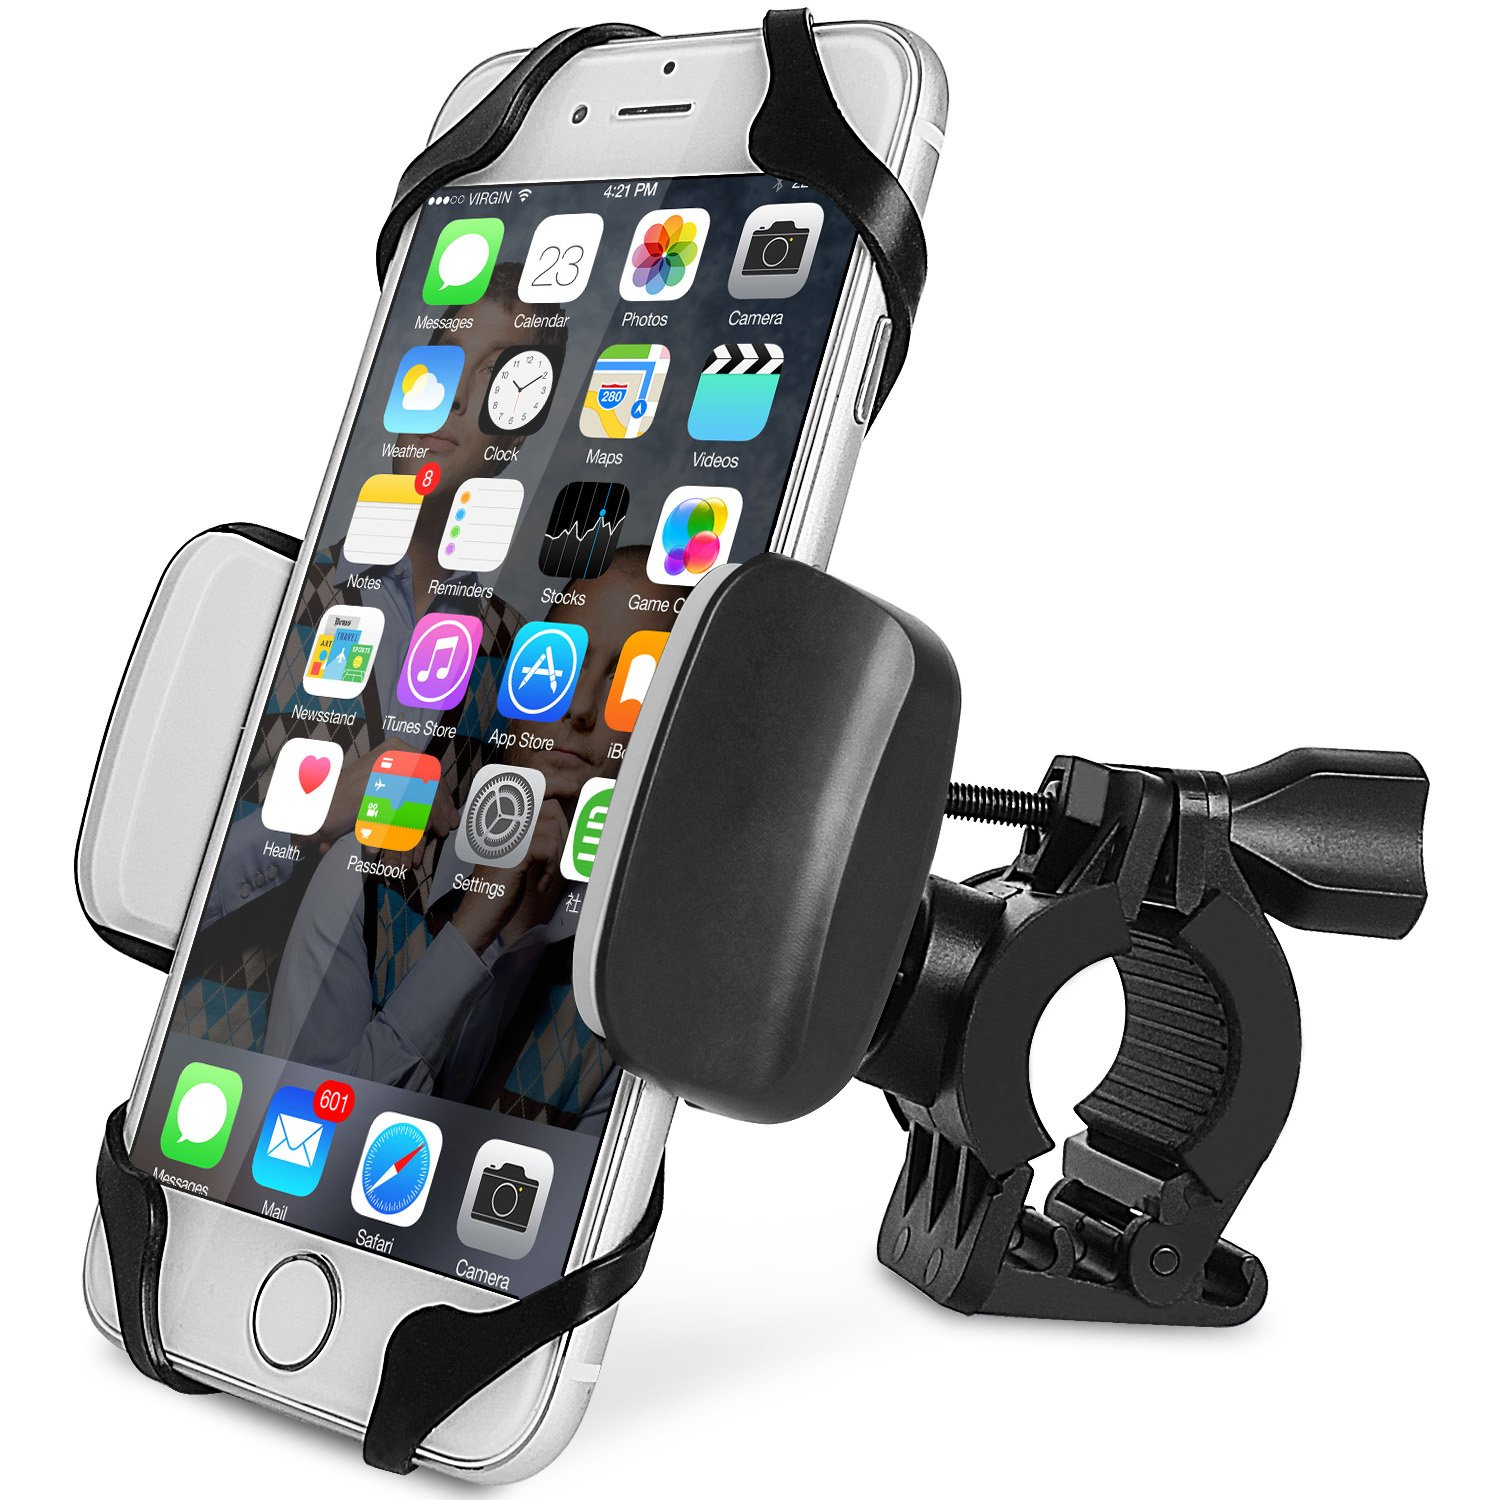 Bike Mount, PTUNA Bike Mount Phone Holder Motorcycle Phone Mount Bike Handlebar Adjustable Universal for iPhone X/8/8s/7/7Plus/5s/6s/6 Plus, Galaxy S9/S8/S8 Plus/S7 Edge (Black) 4327088951